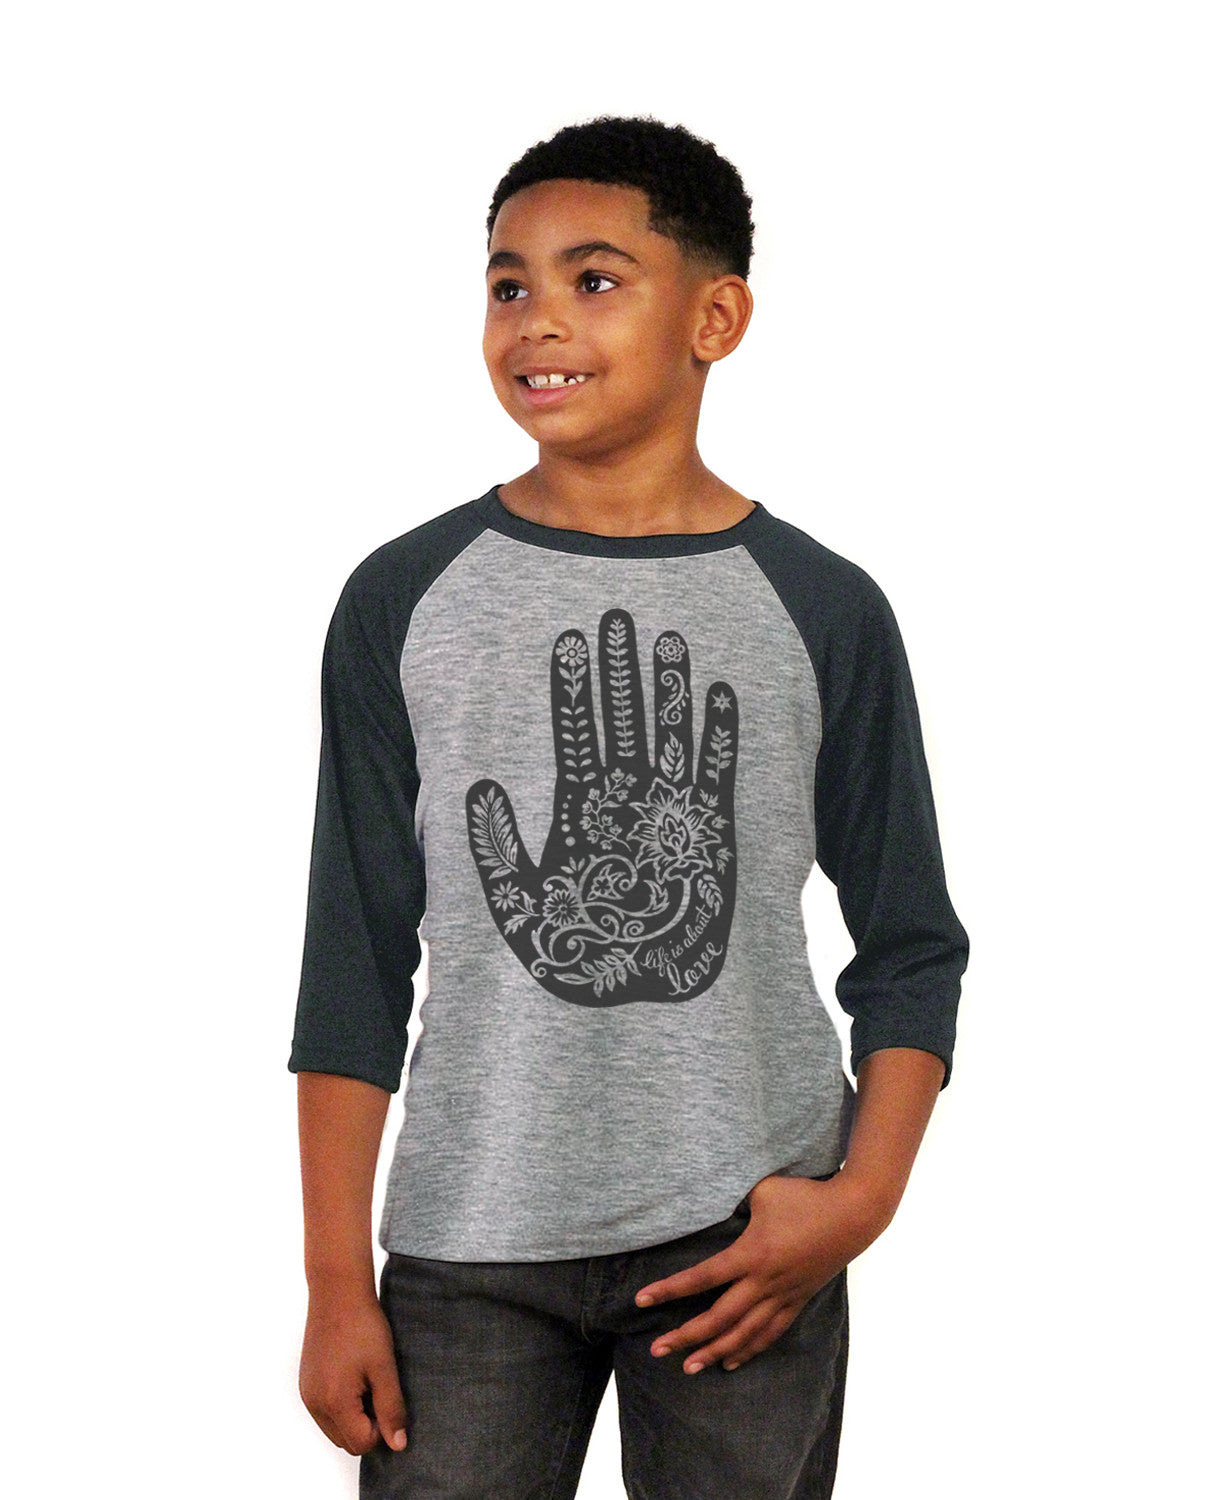 Henna Hand Youth Vintage Baseball T Shirt